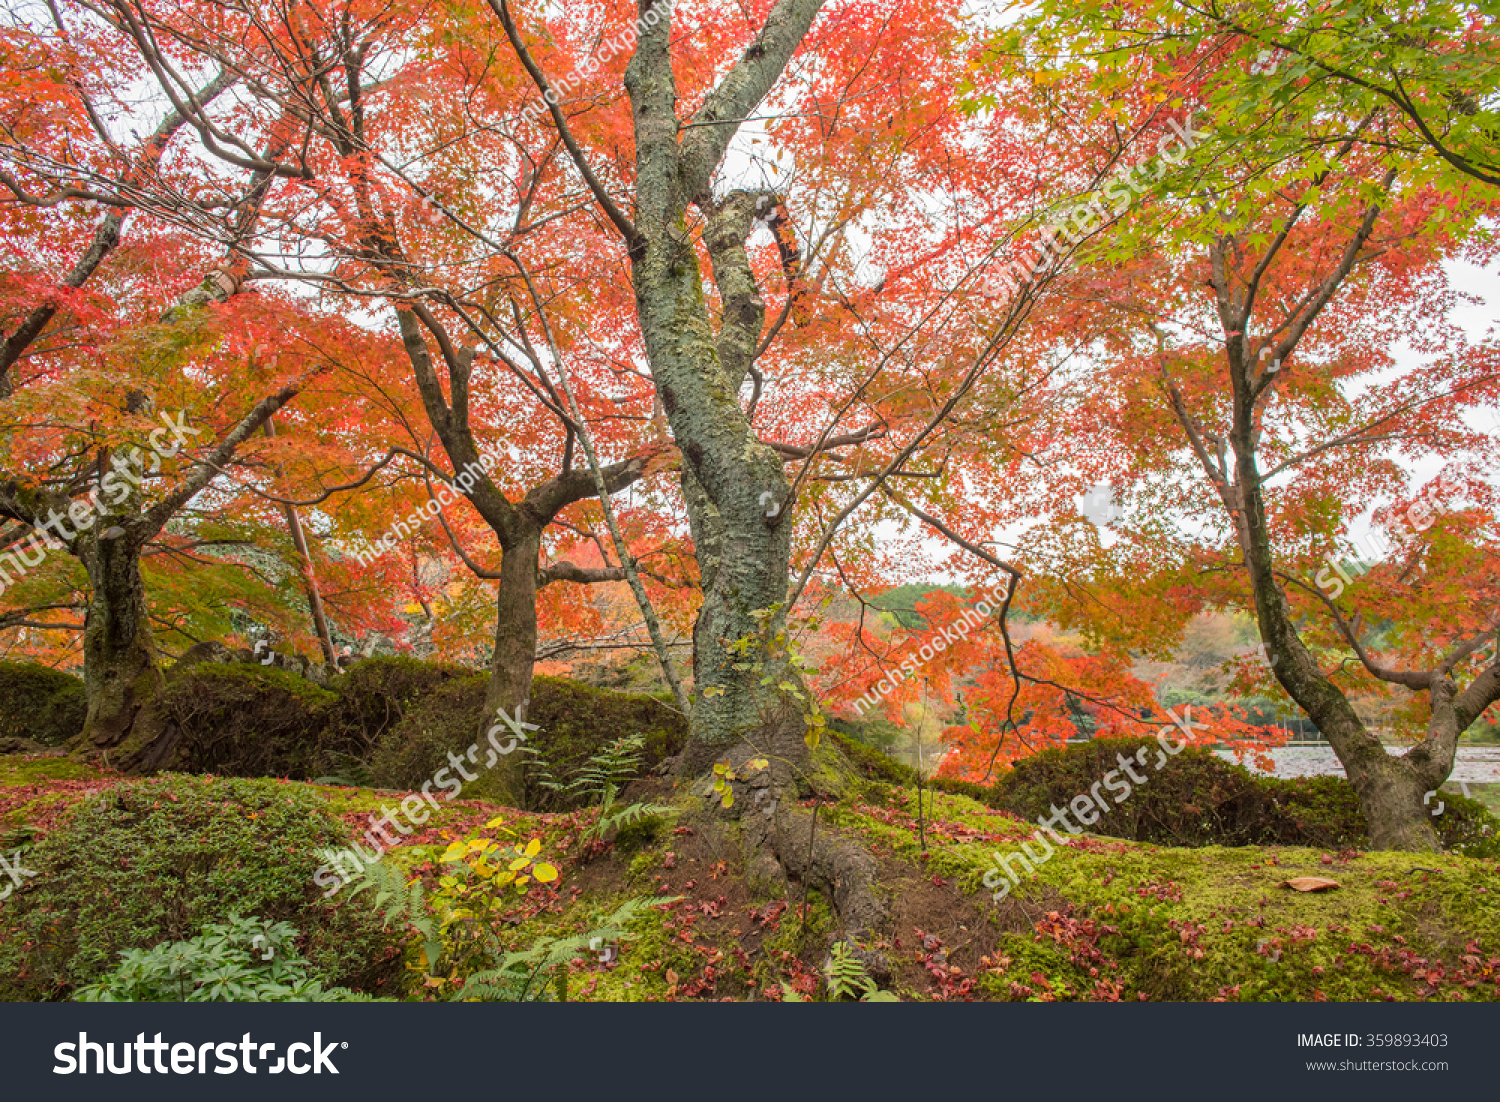 Autumn nature, Ryoanji temple gardens in Kyoto, Japan | EZ Canvas